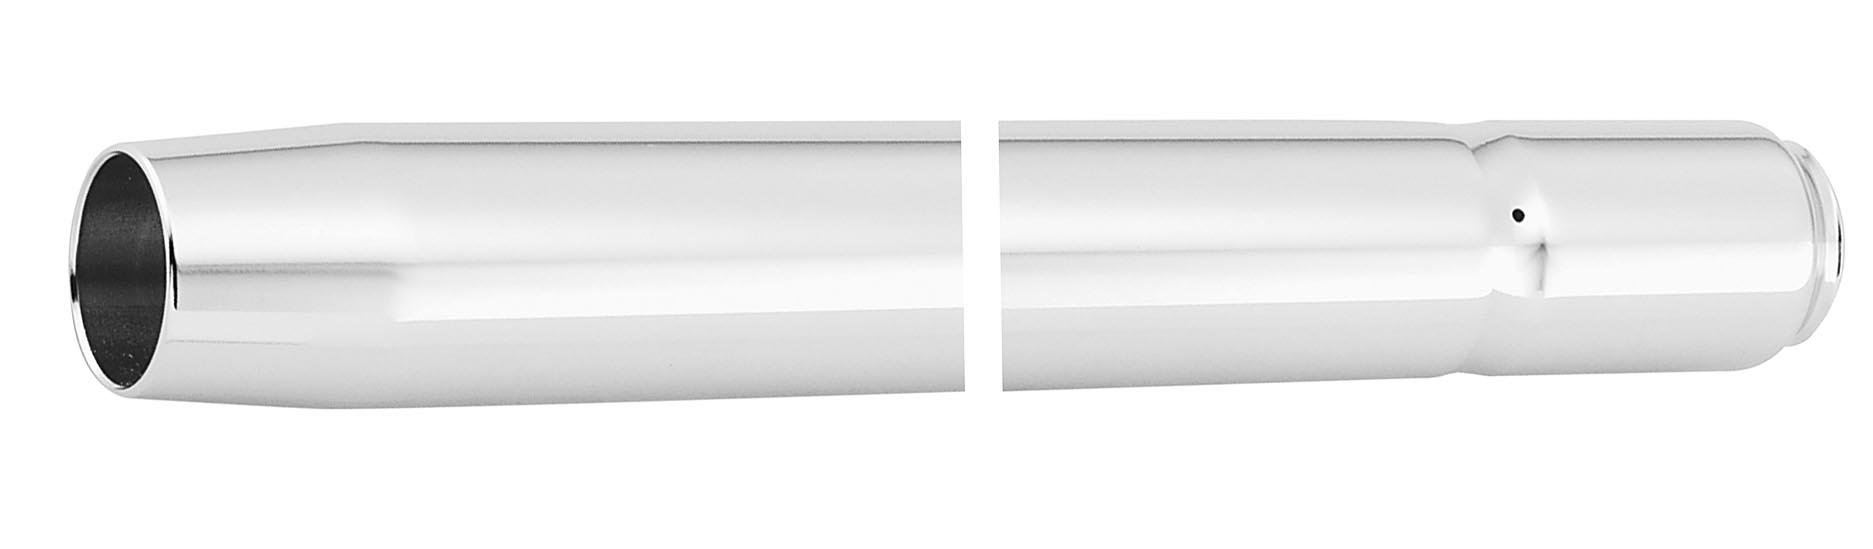 Custom Cycle 39mm Show Chrome Fork Tubes - 26.25in. T1346